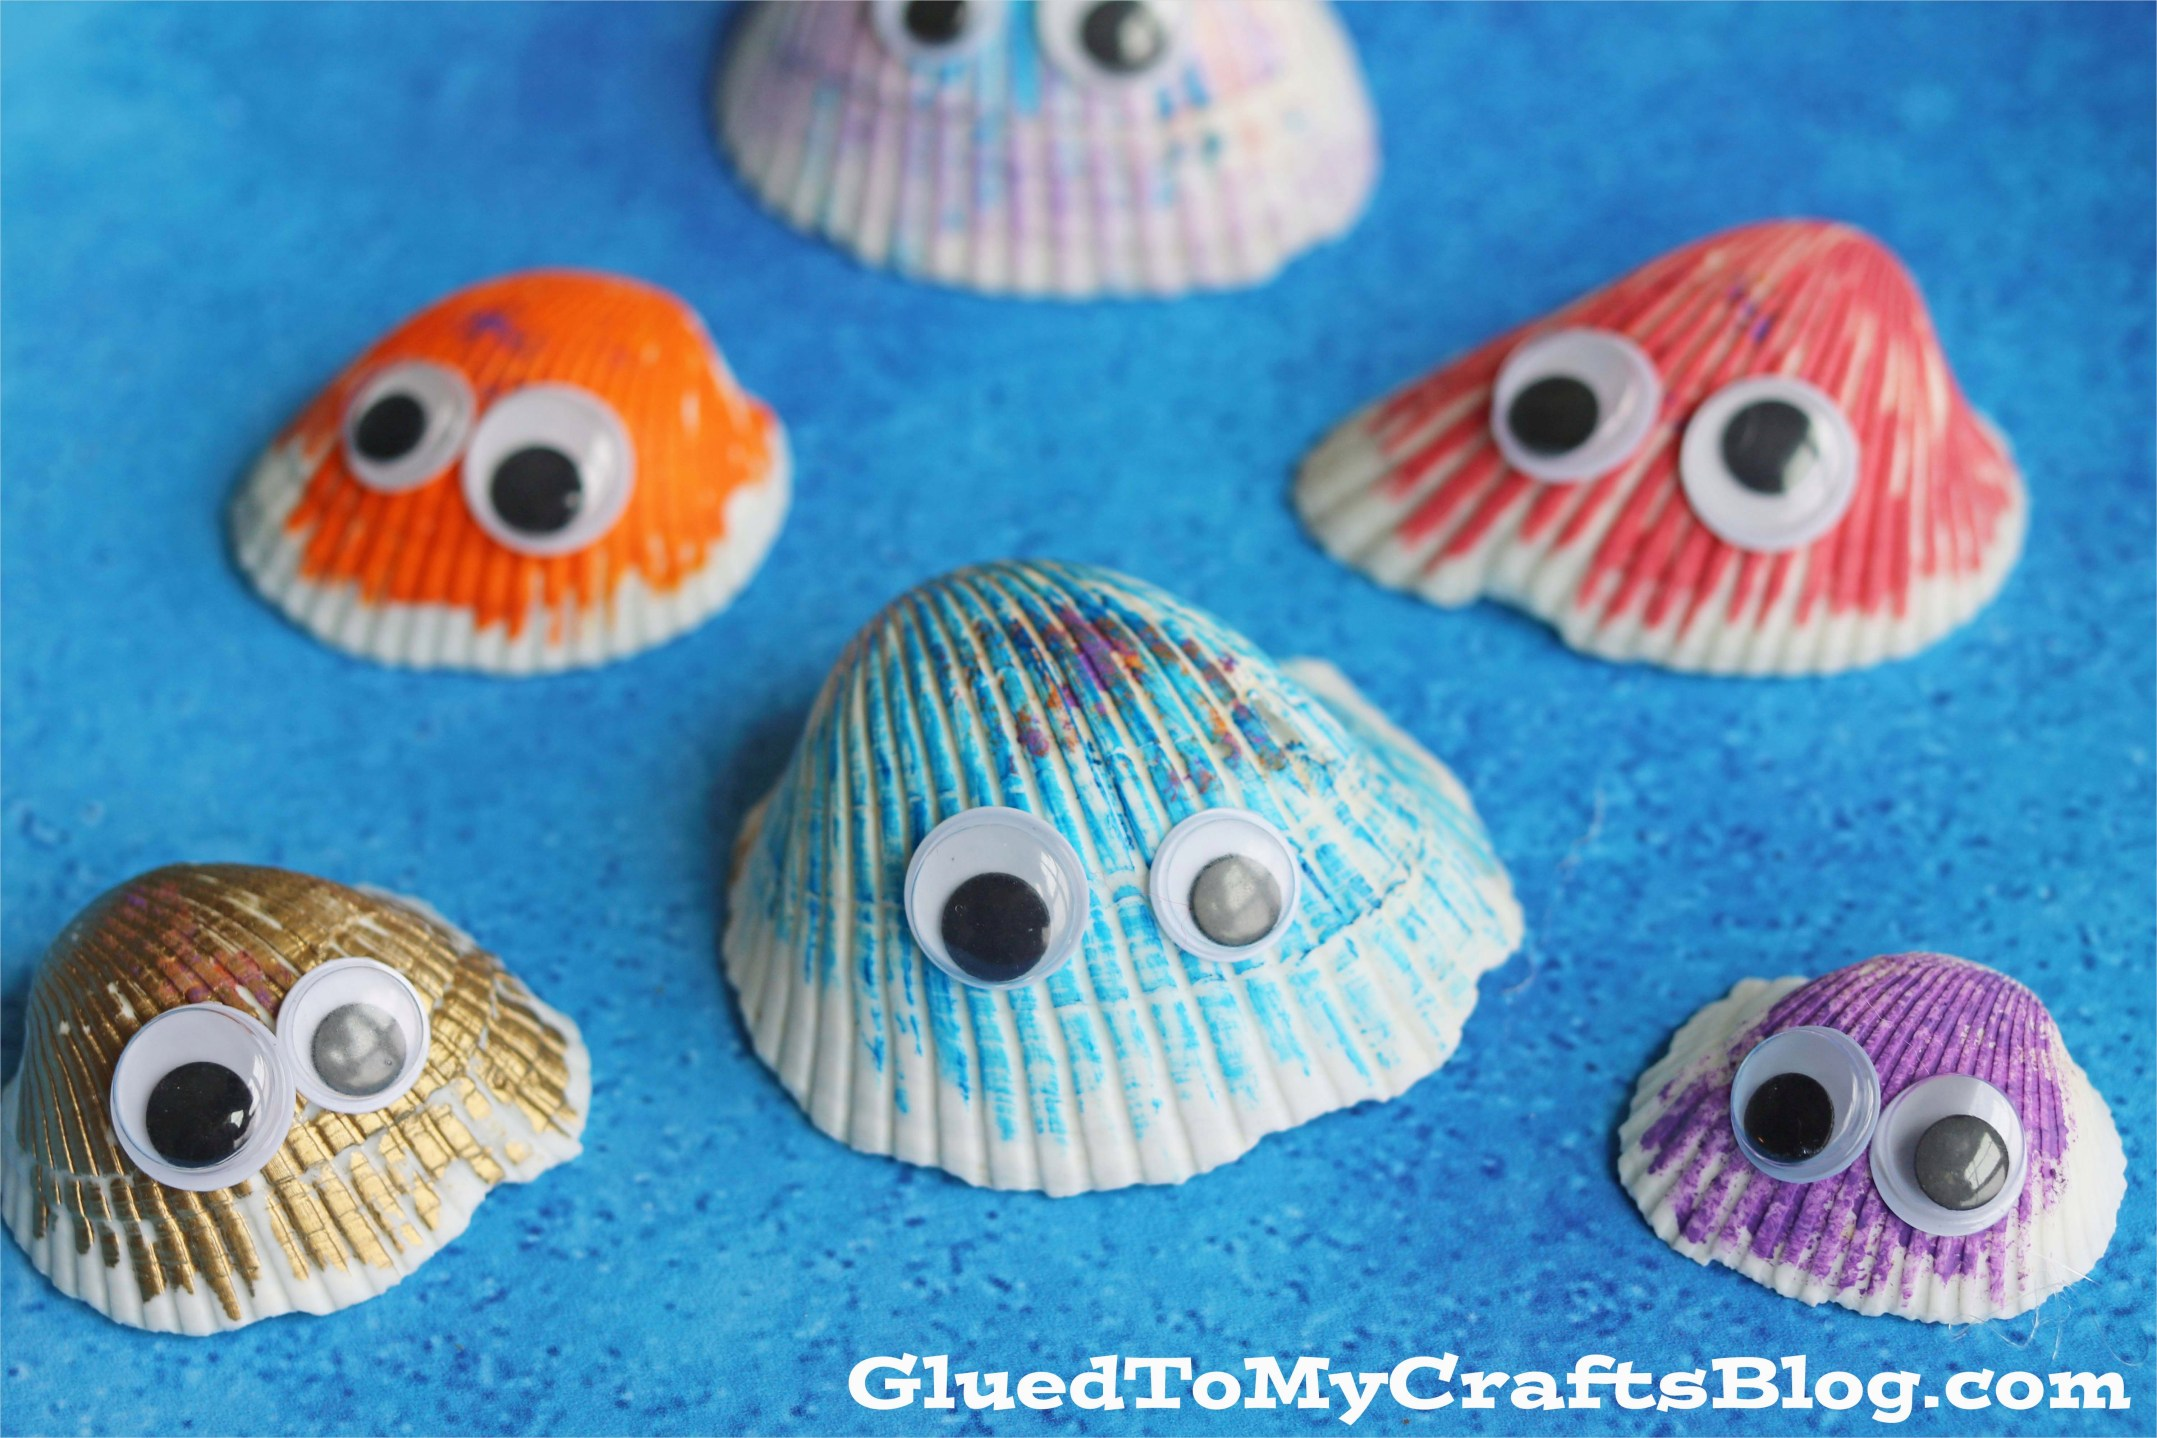 40 Diy Easy Seashell Craft Ideas 84 Simple Seashell Friends Kid Craft Glued to My Crafts 5